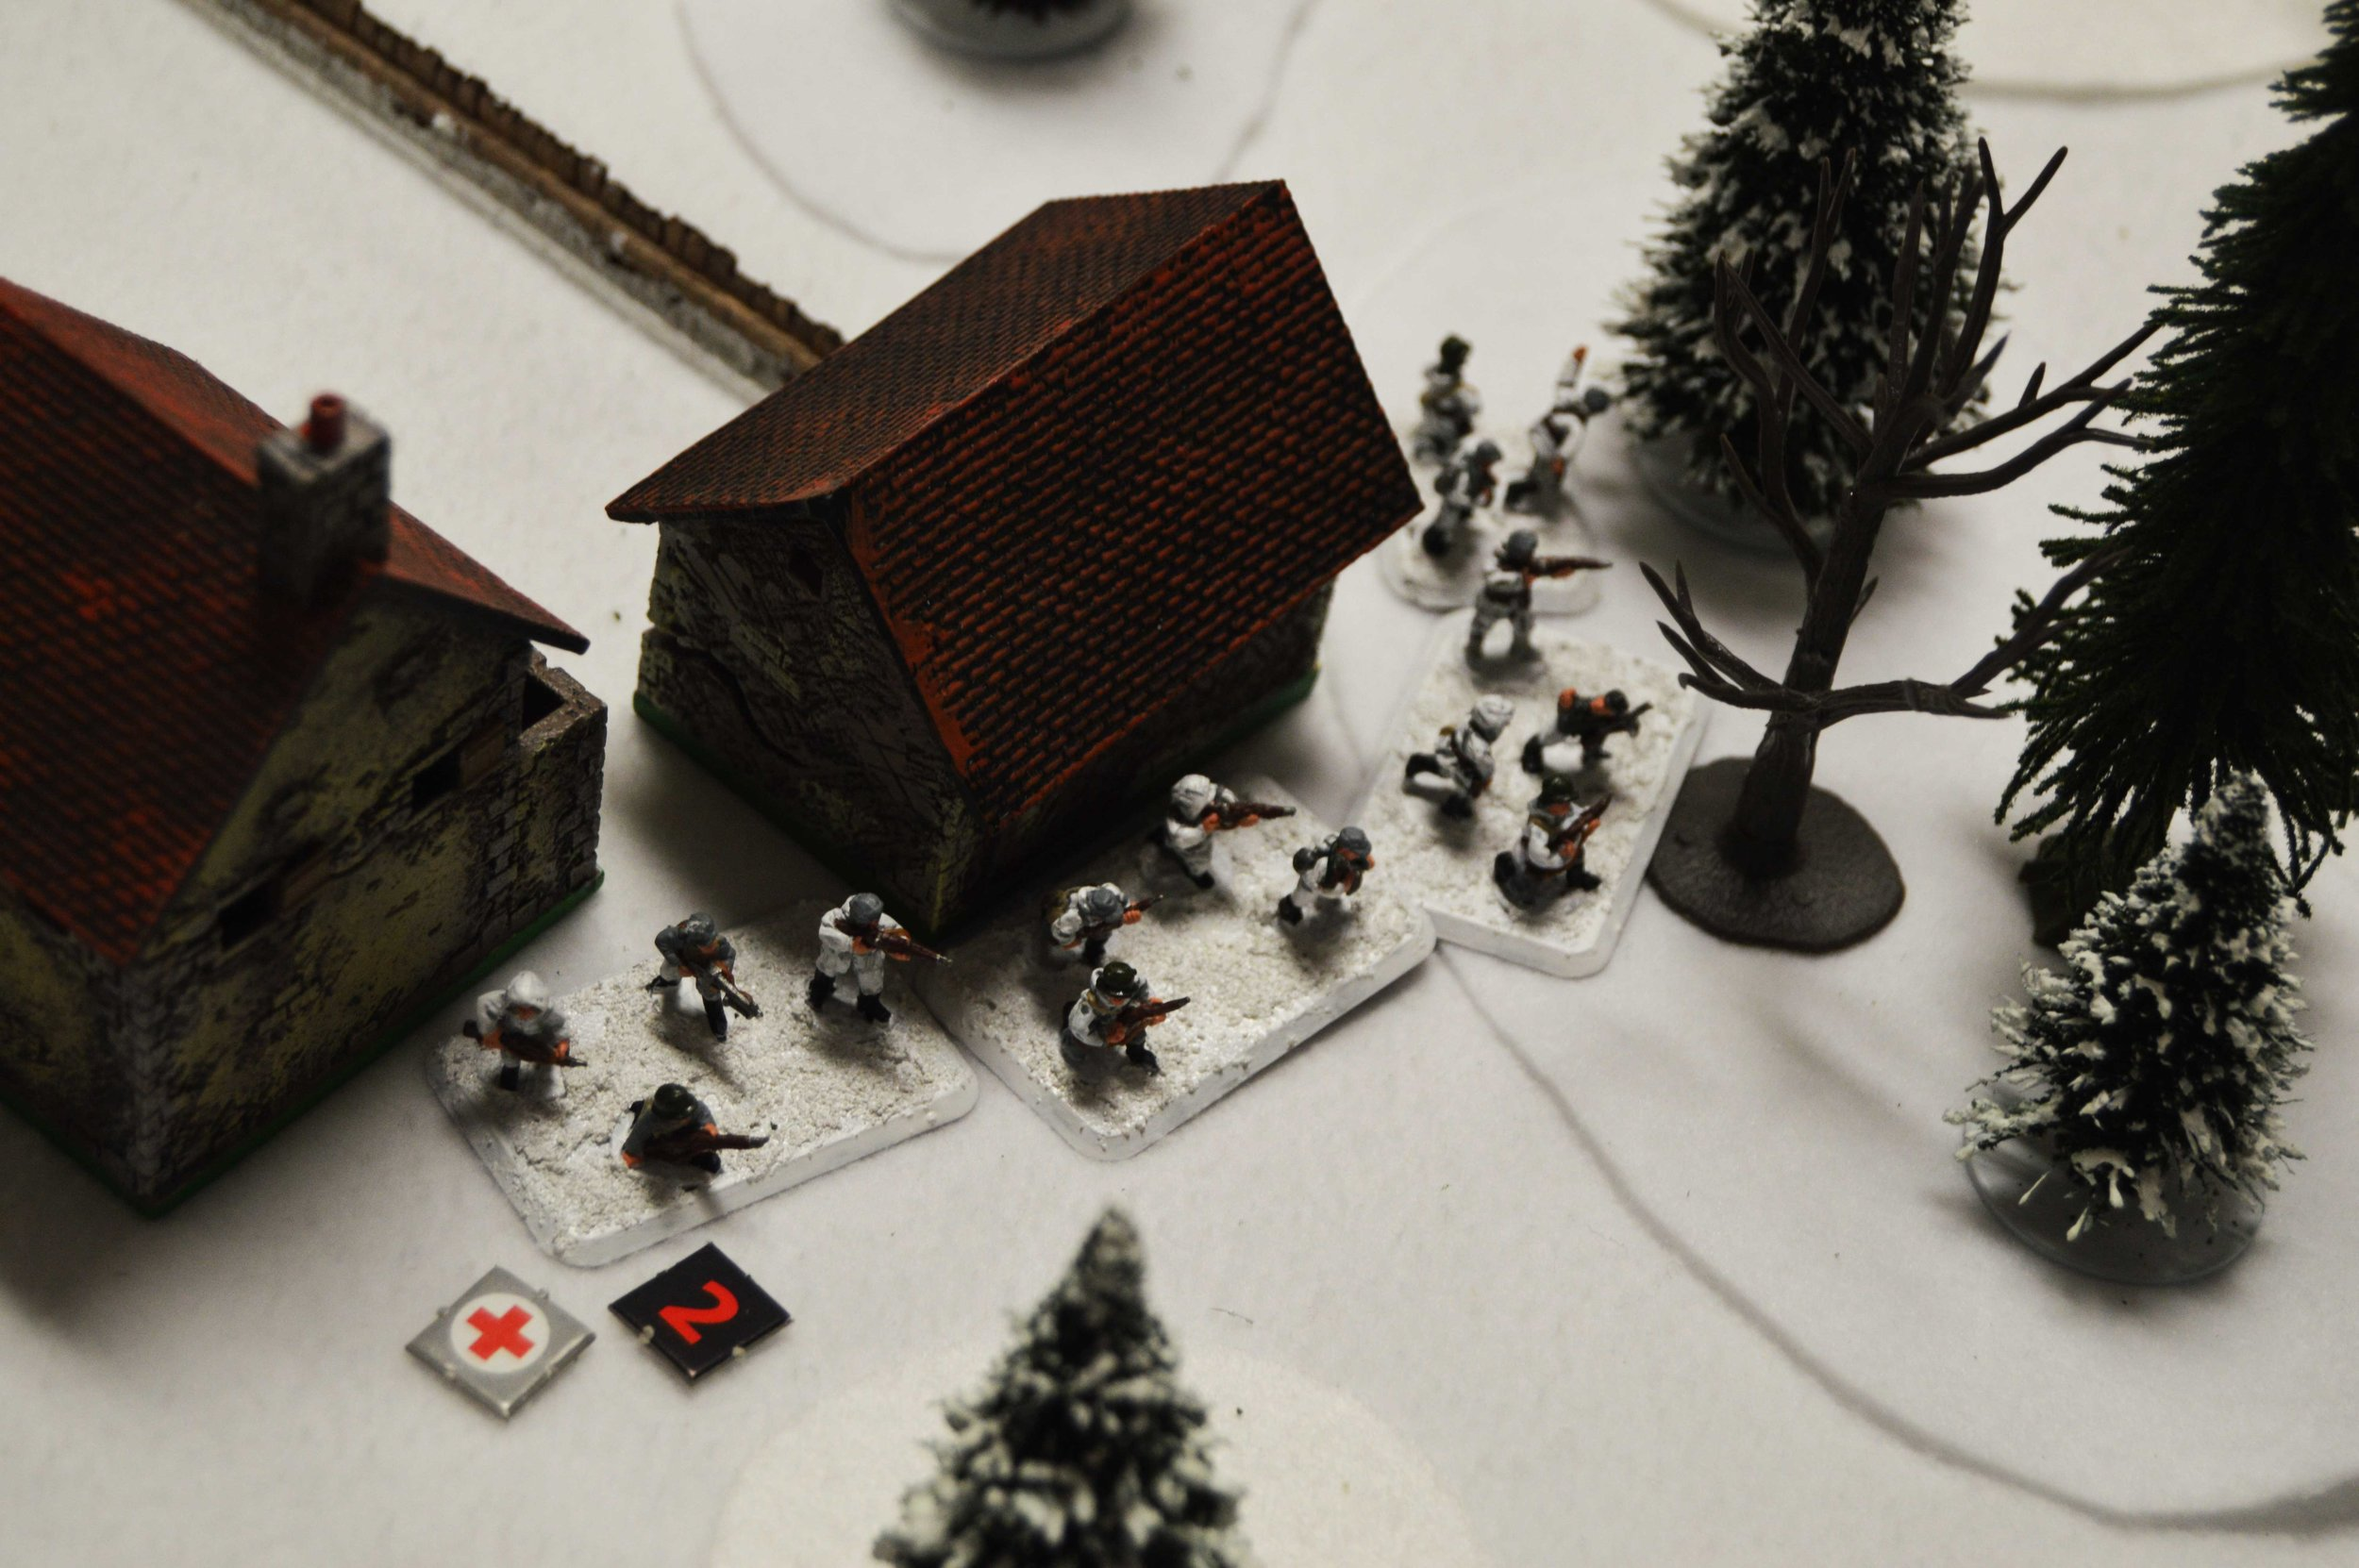 The Finns seize the moment, advancing from the safety of the farmhouse to storm the Soviet trenches.